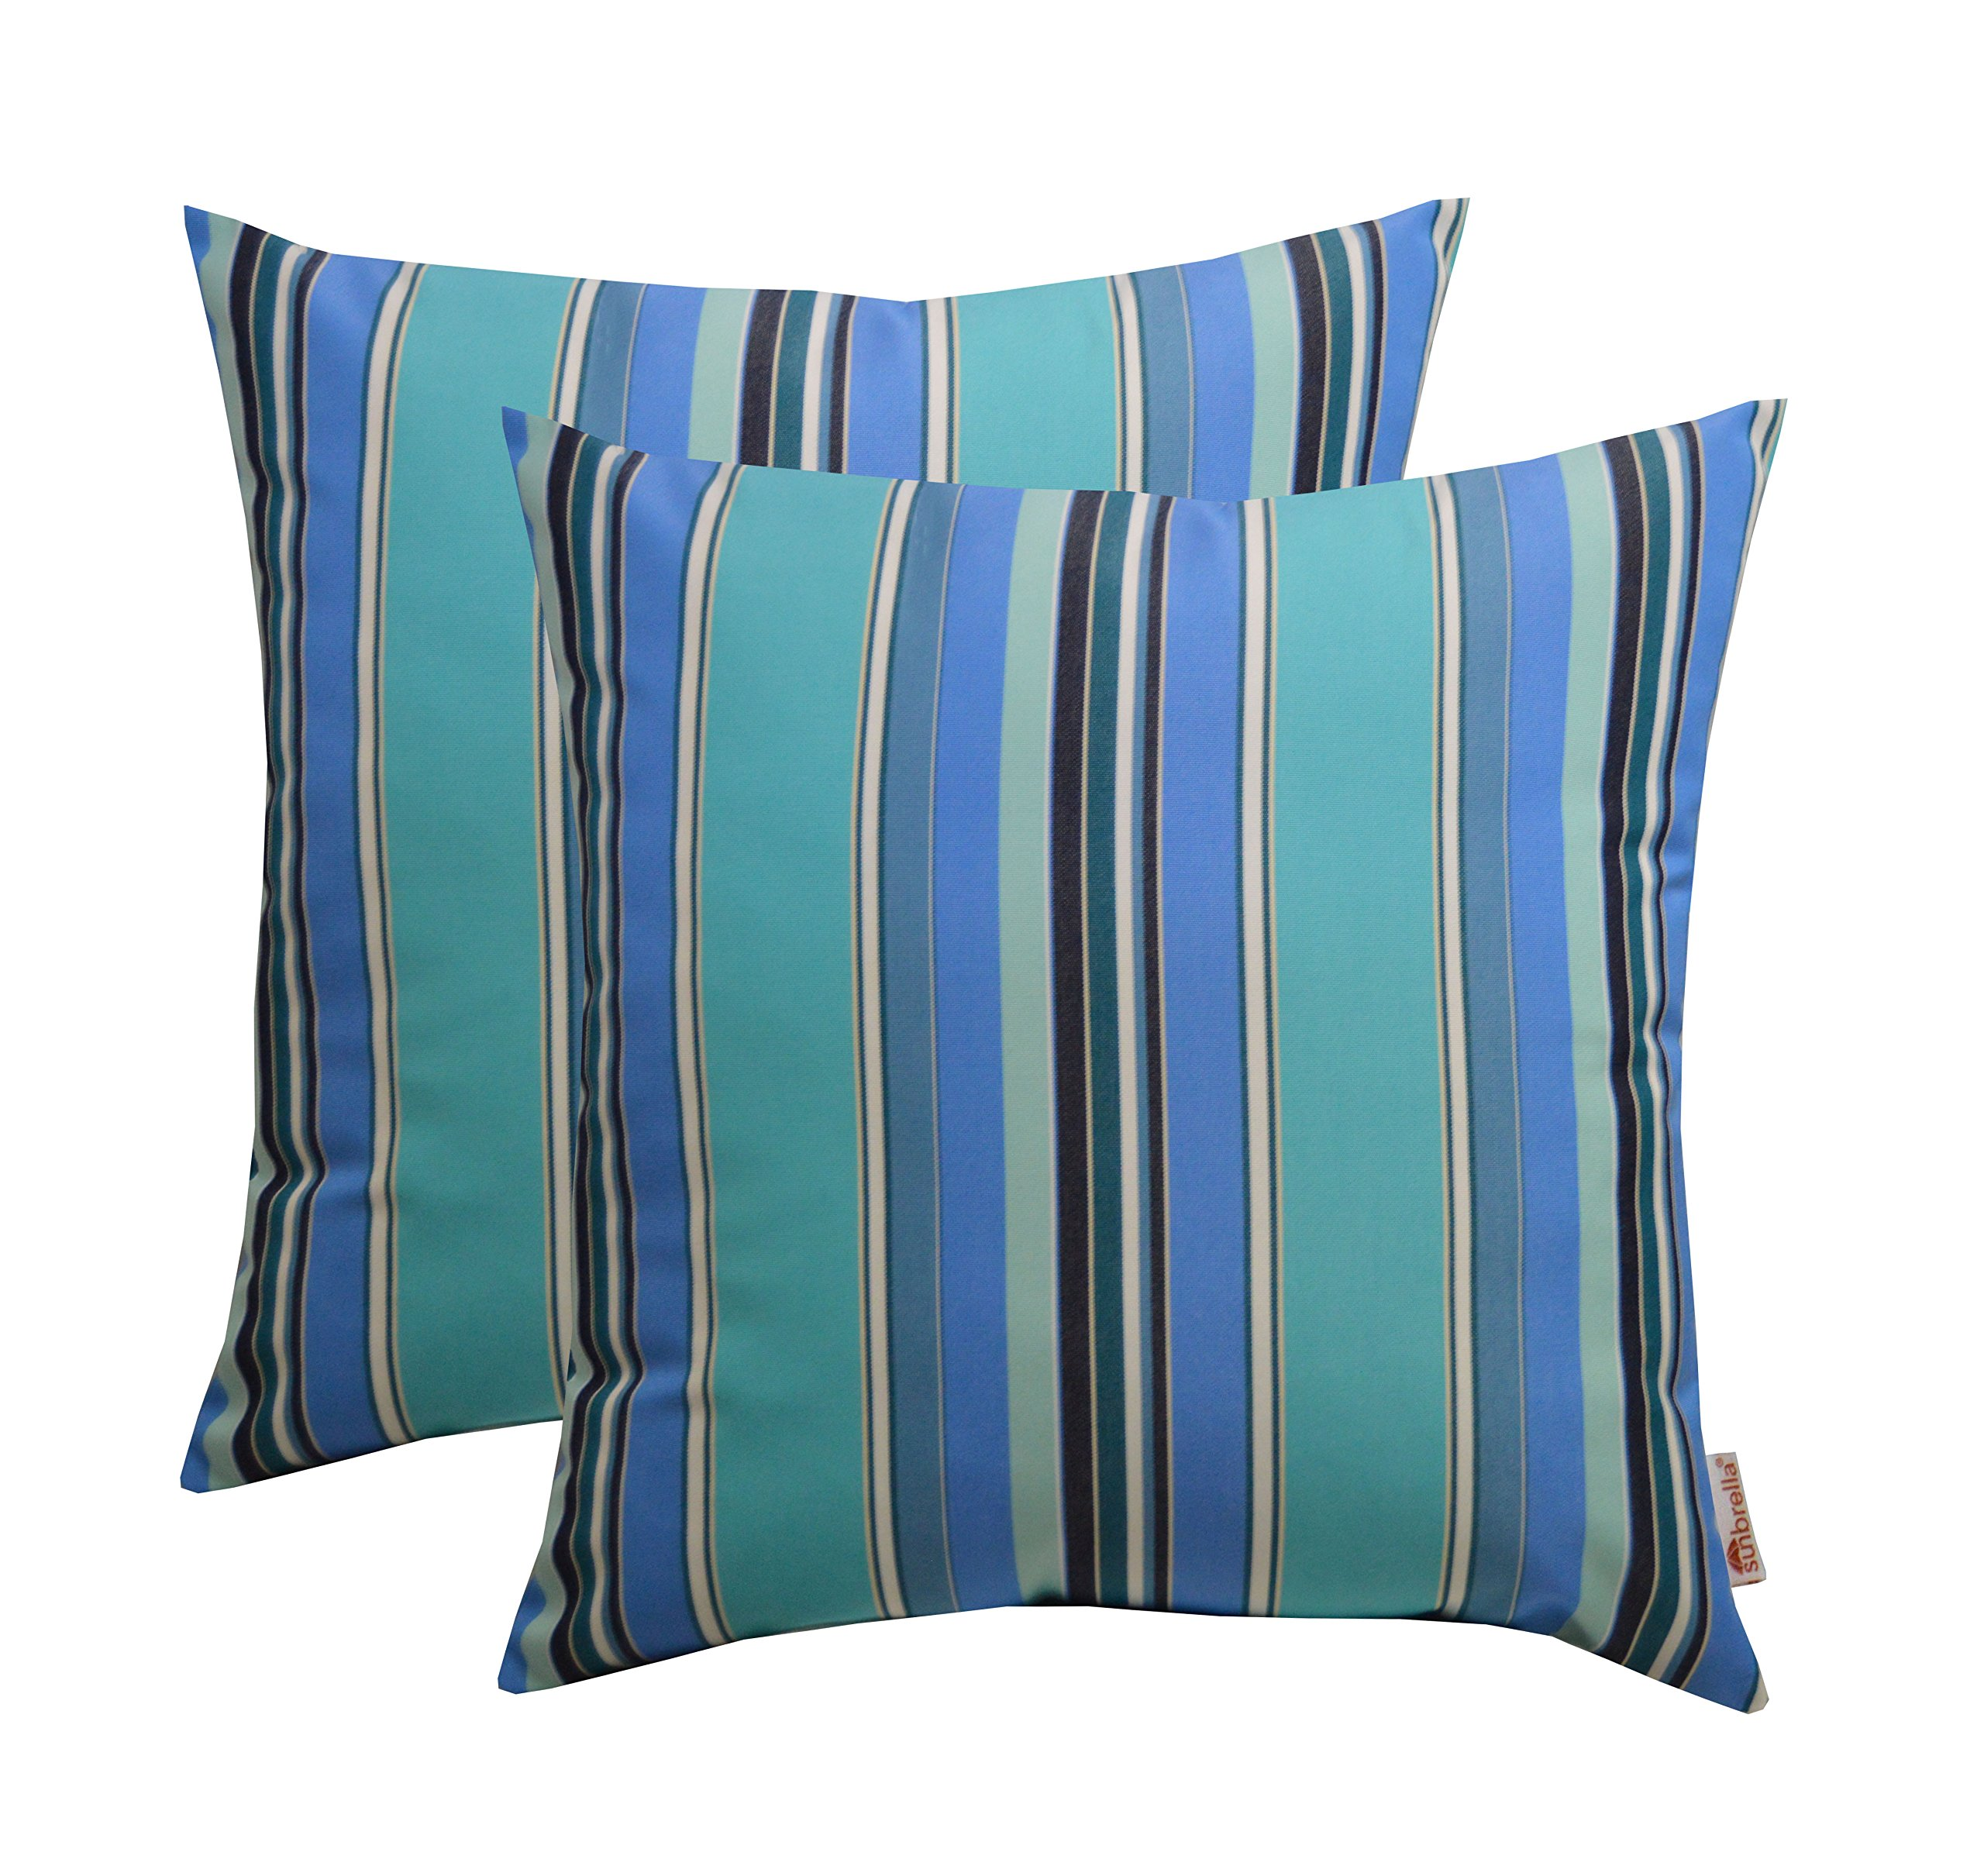 Sunbrella Set of 2 Dolce Oasis - Blue Teal Navy White Stripe - In/Outdoor Square Throw/Toss Pillows (20'' x 20'') 1101